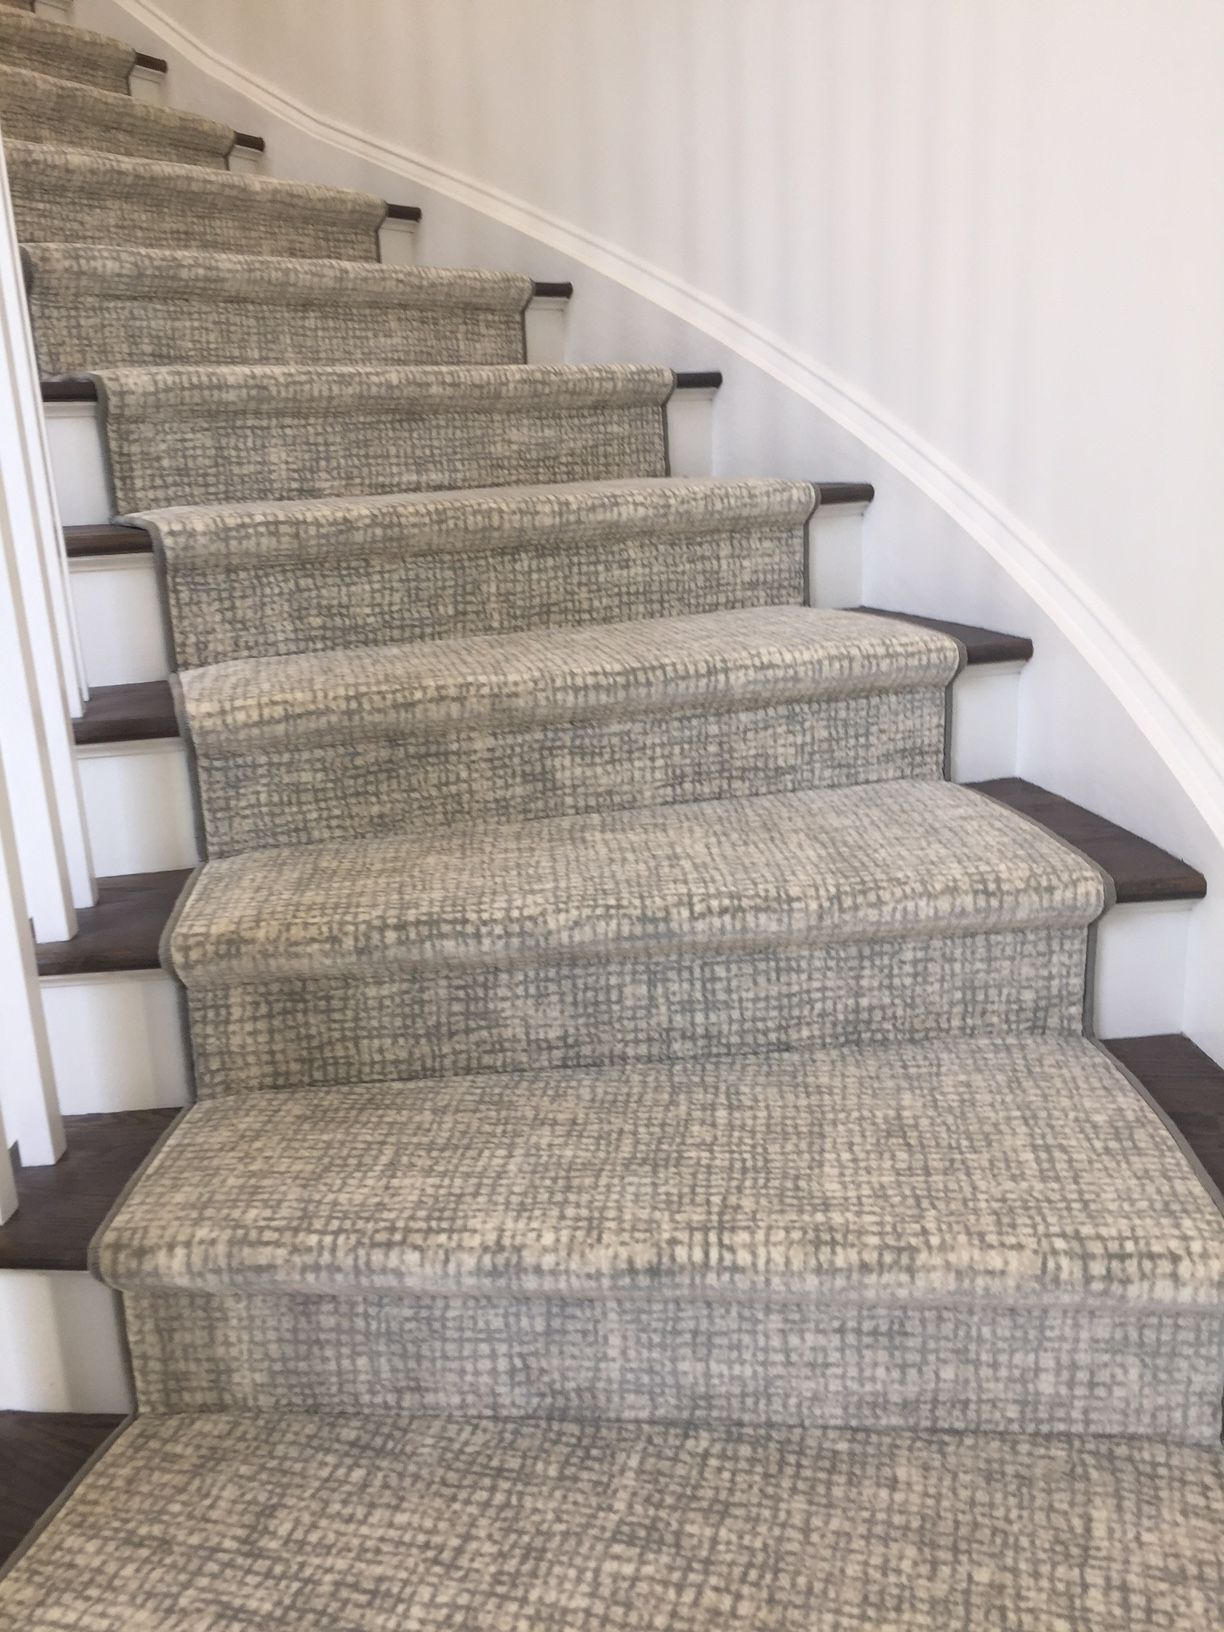 Install Of Carpet One Curved Staircase Runner With Standard Binding We Tackle All Projects Stair Runner Carpet Stairway Carpet Carpet Staircase